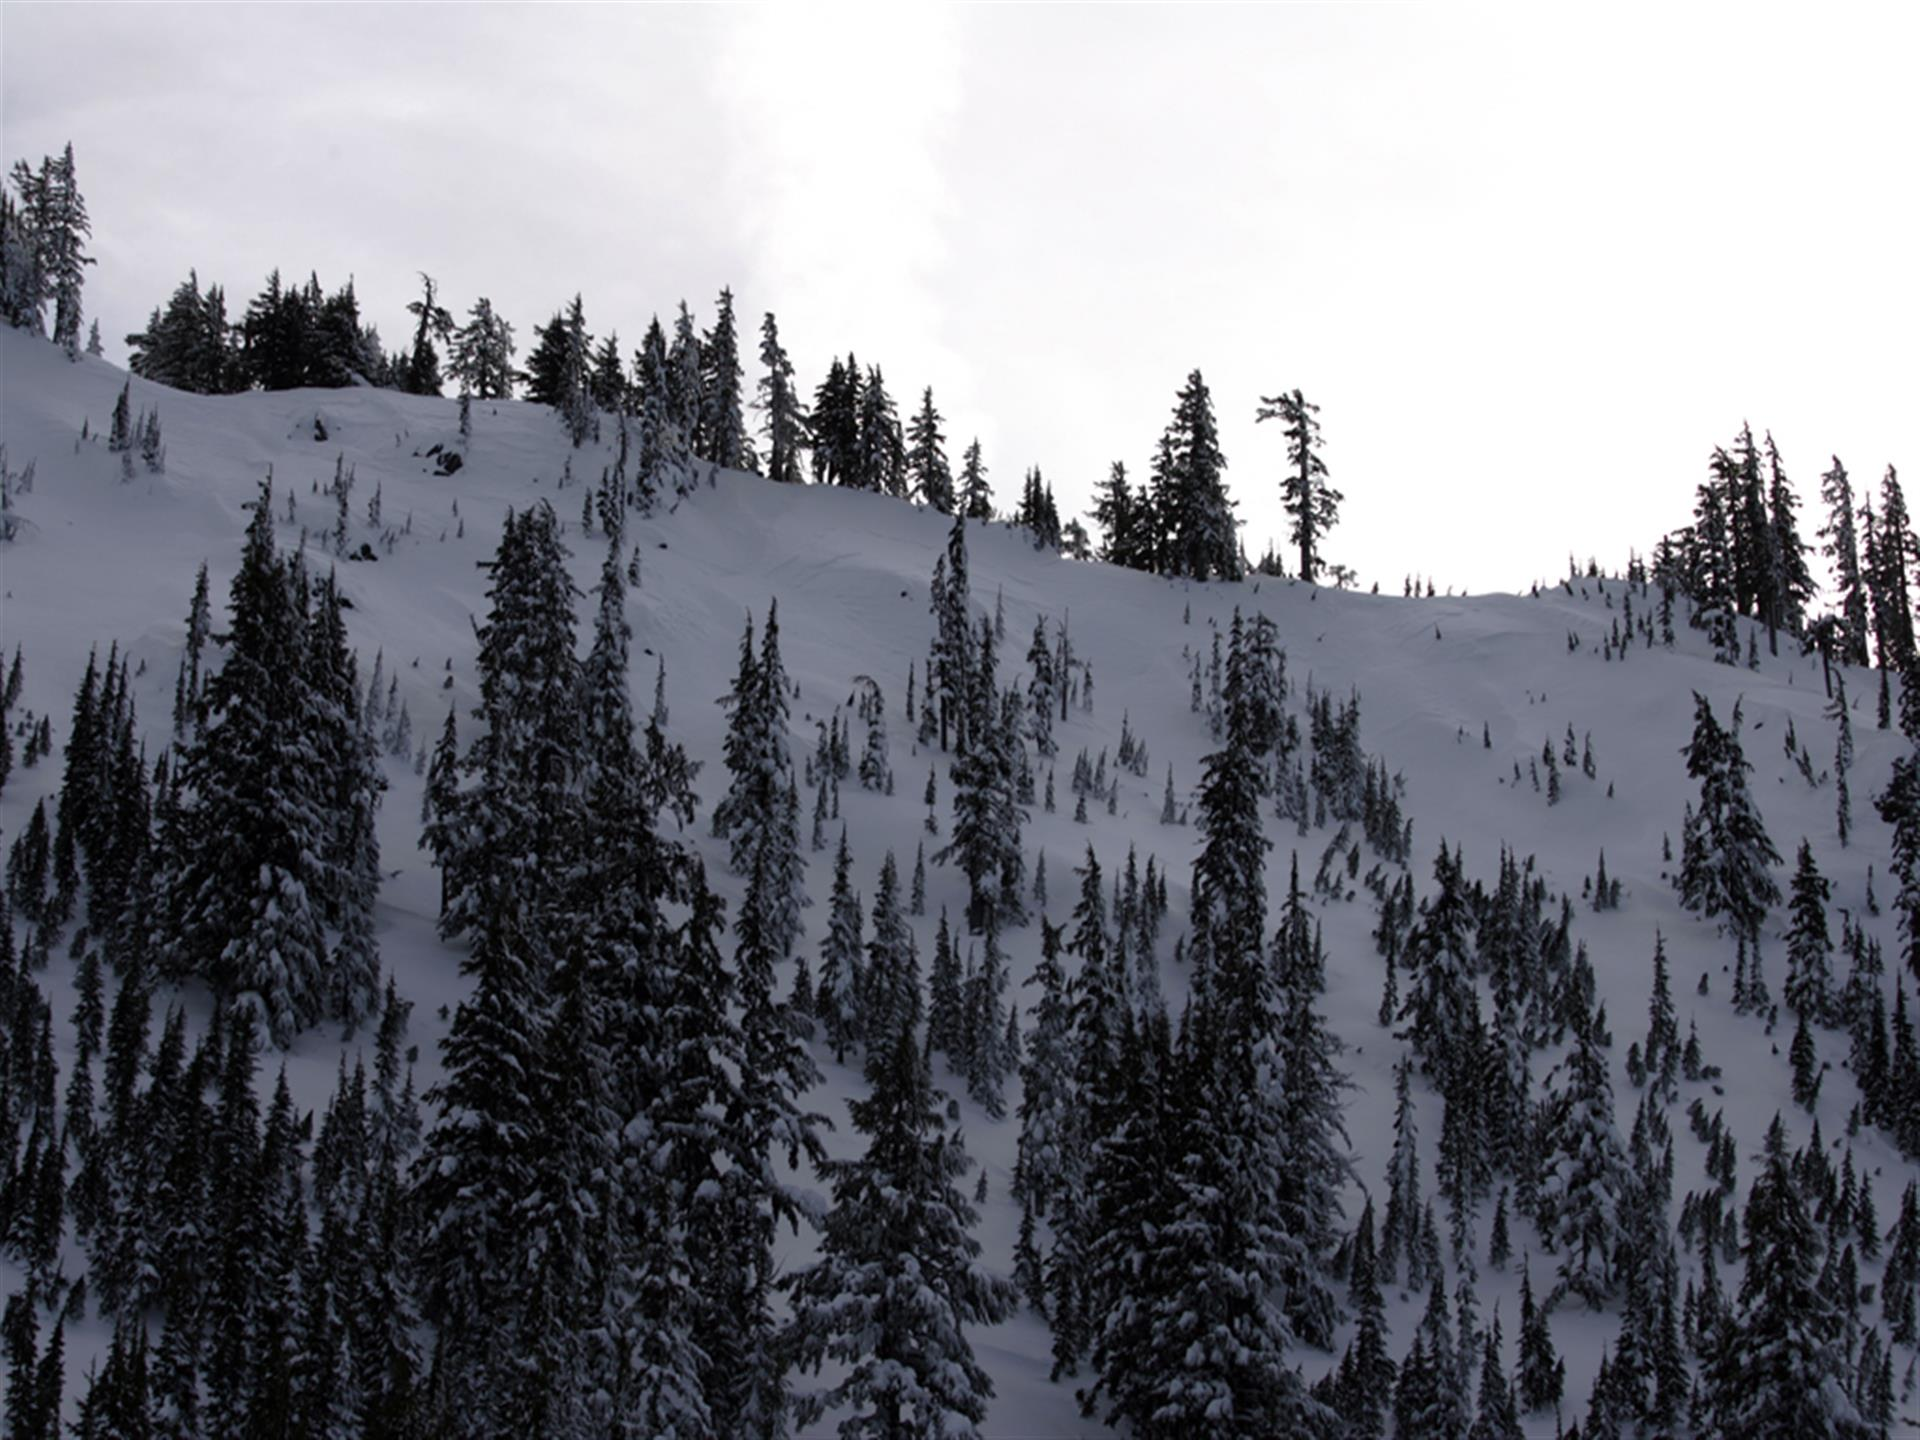 snow-covered trees on side of a mountain